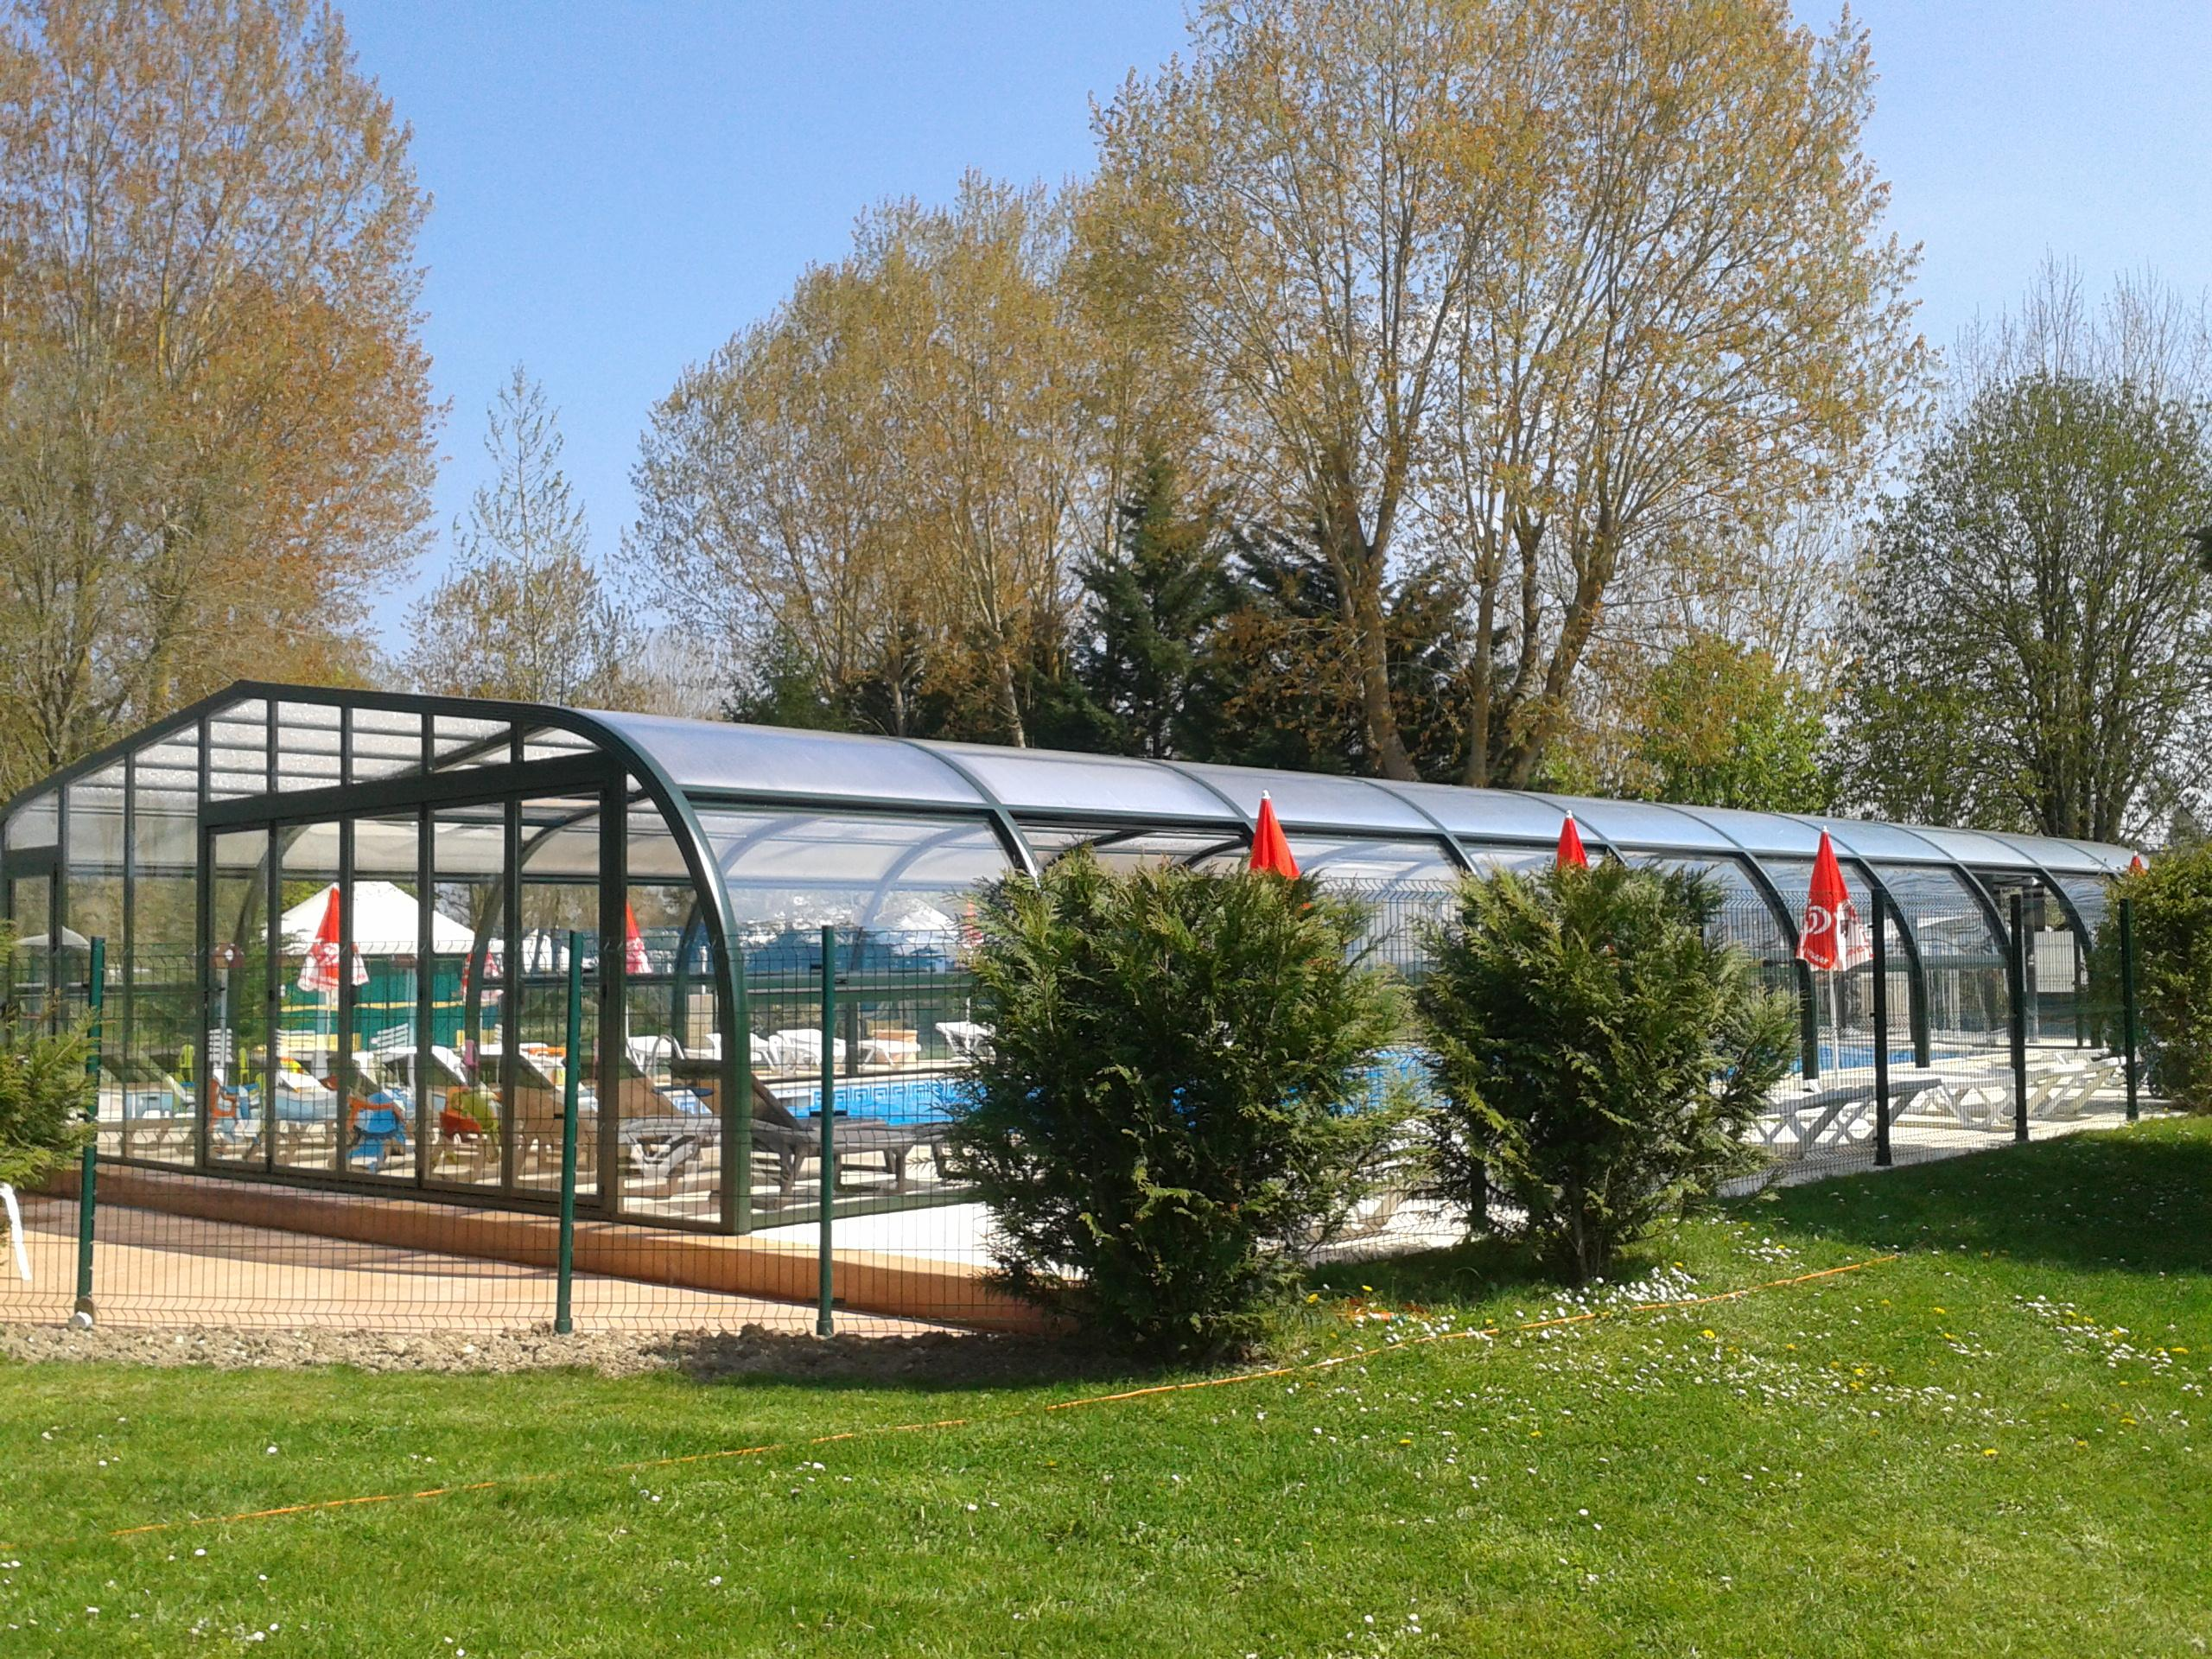 Camping couleurs du monde camping rond point for Piscine montparnasse